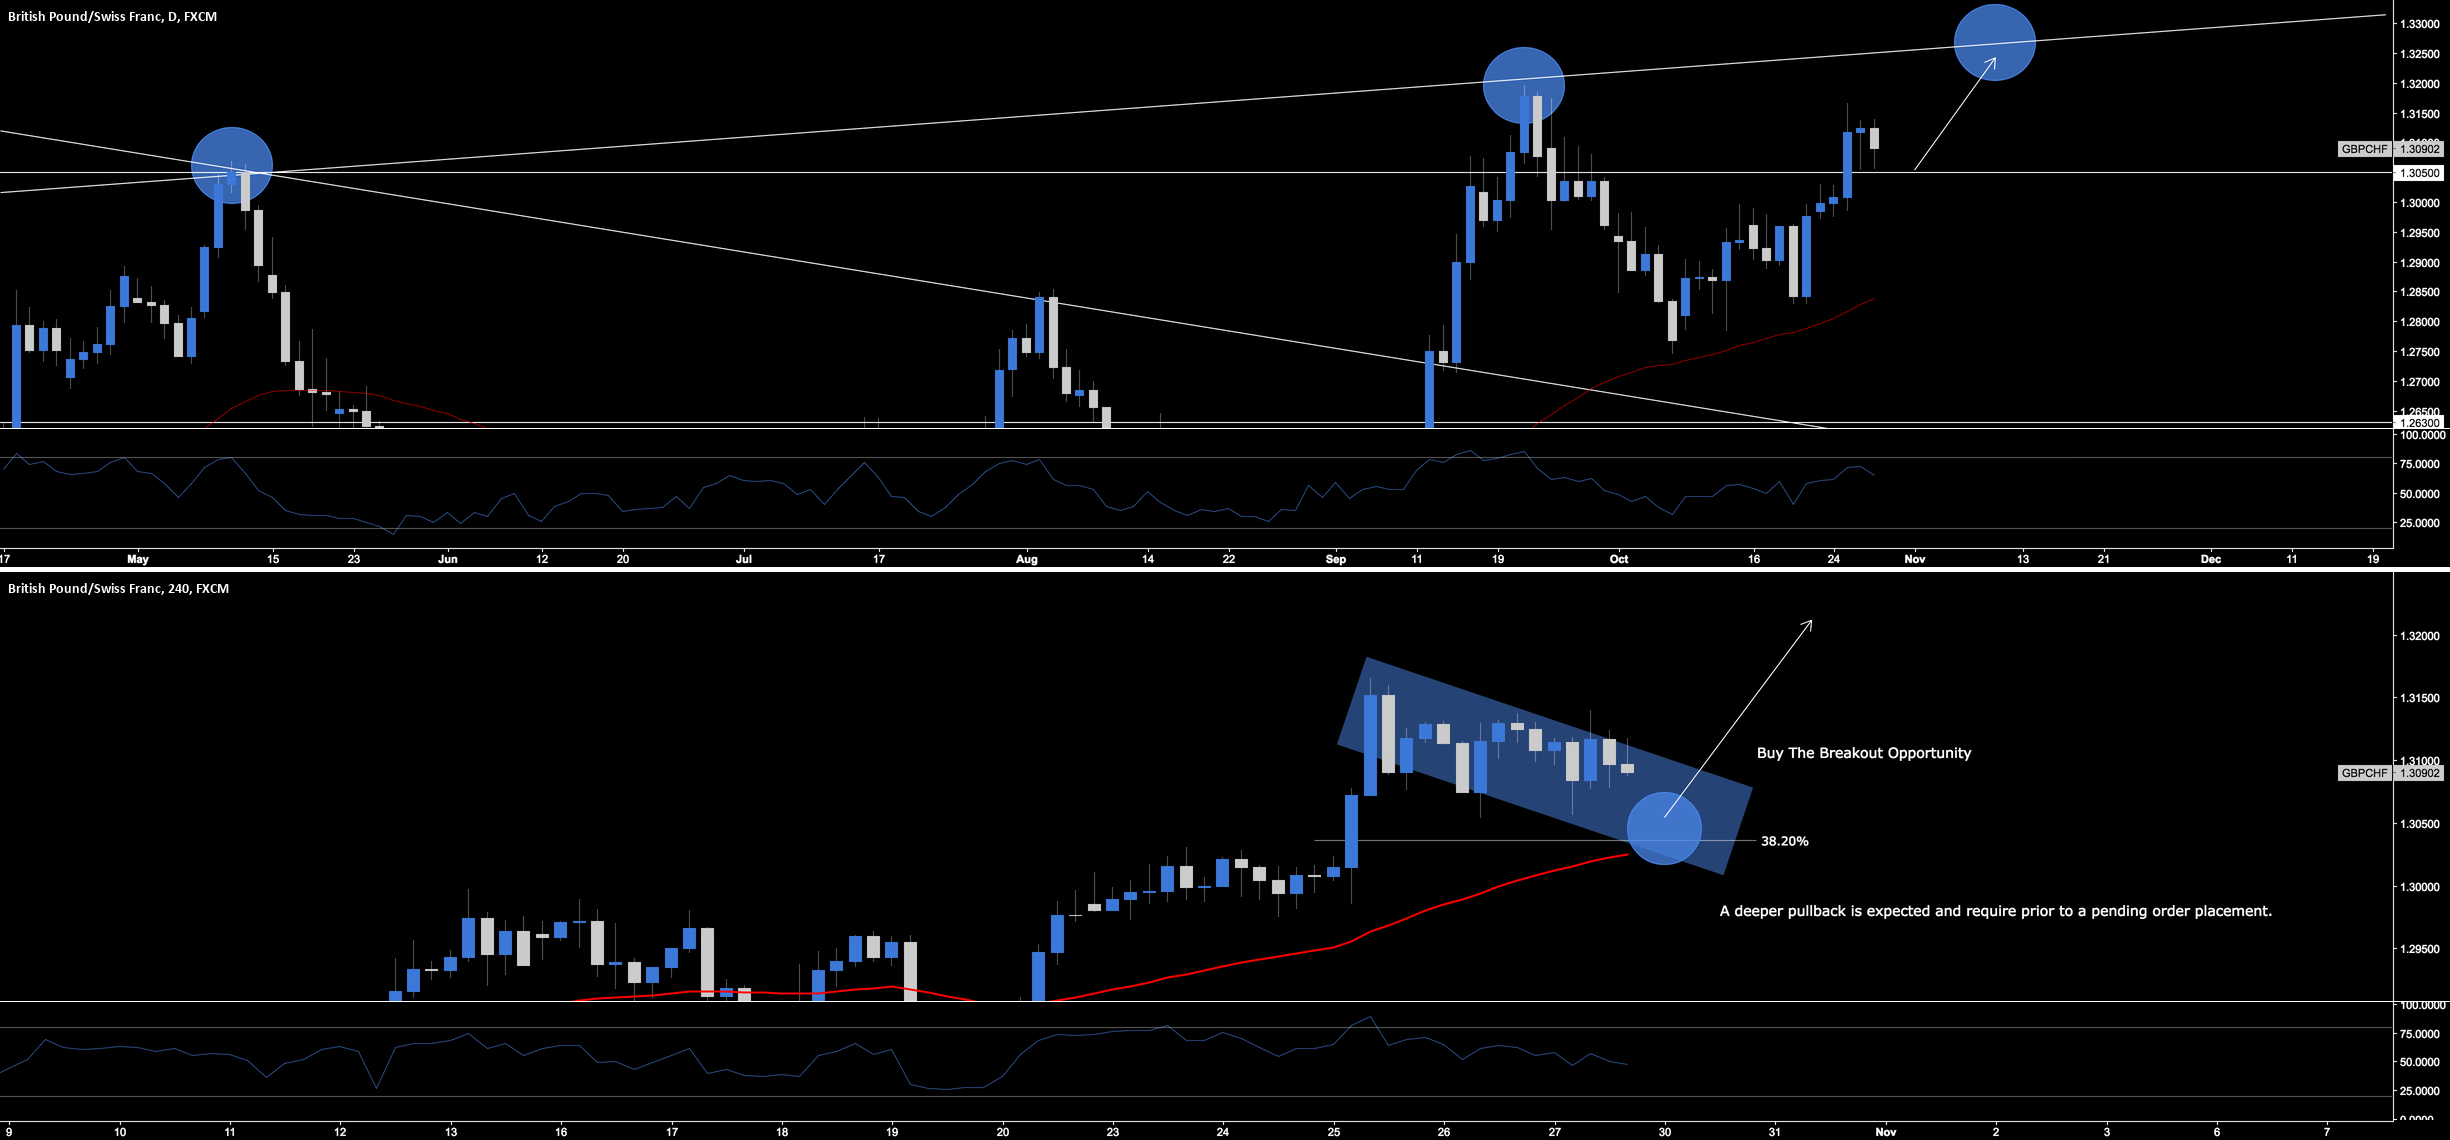 GBP.CHF - Break & Retest Long Opportunity